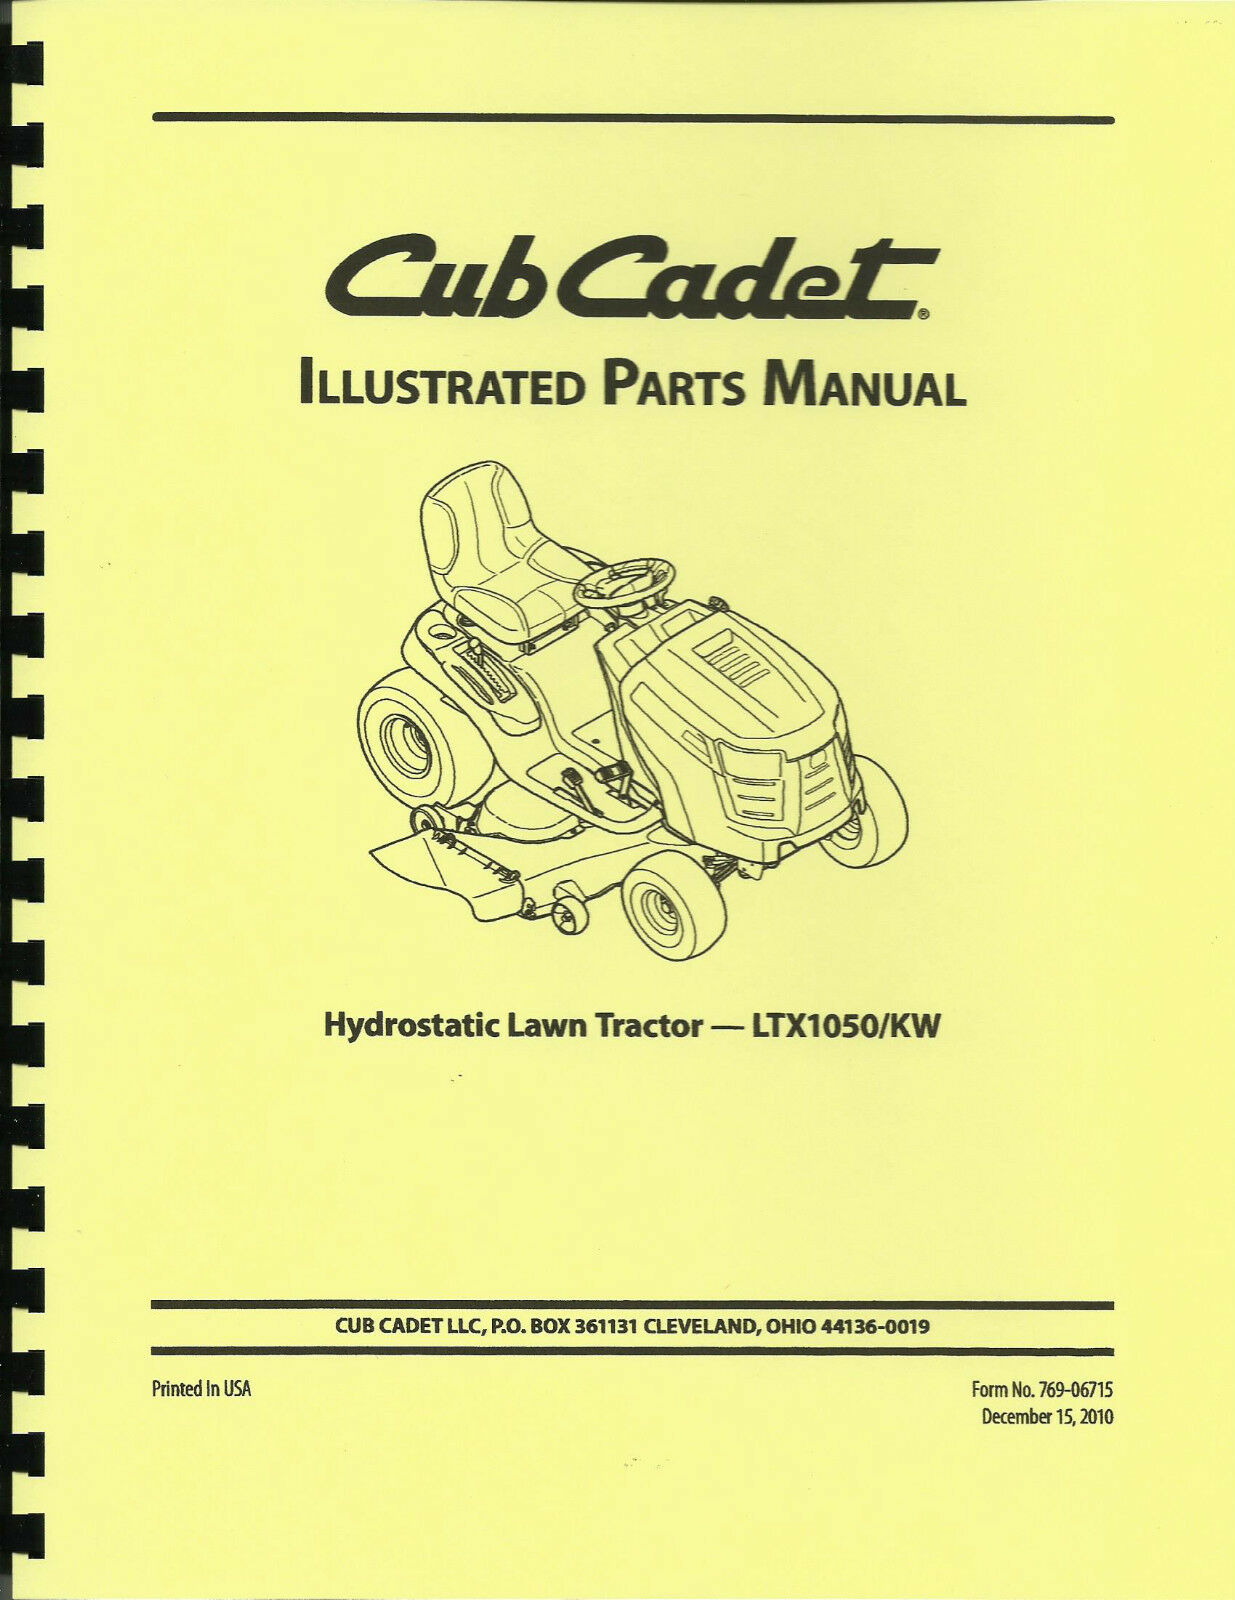 Cub Cadet LTX1050/kw Lawn Tractor Parts Manual 1 of 2Only 1 available ...